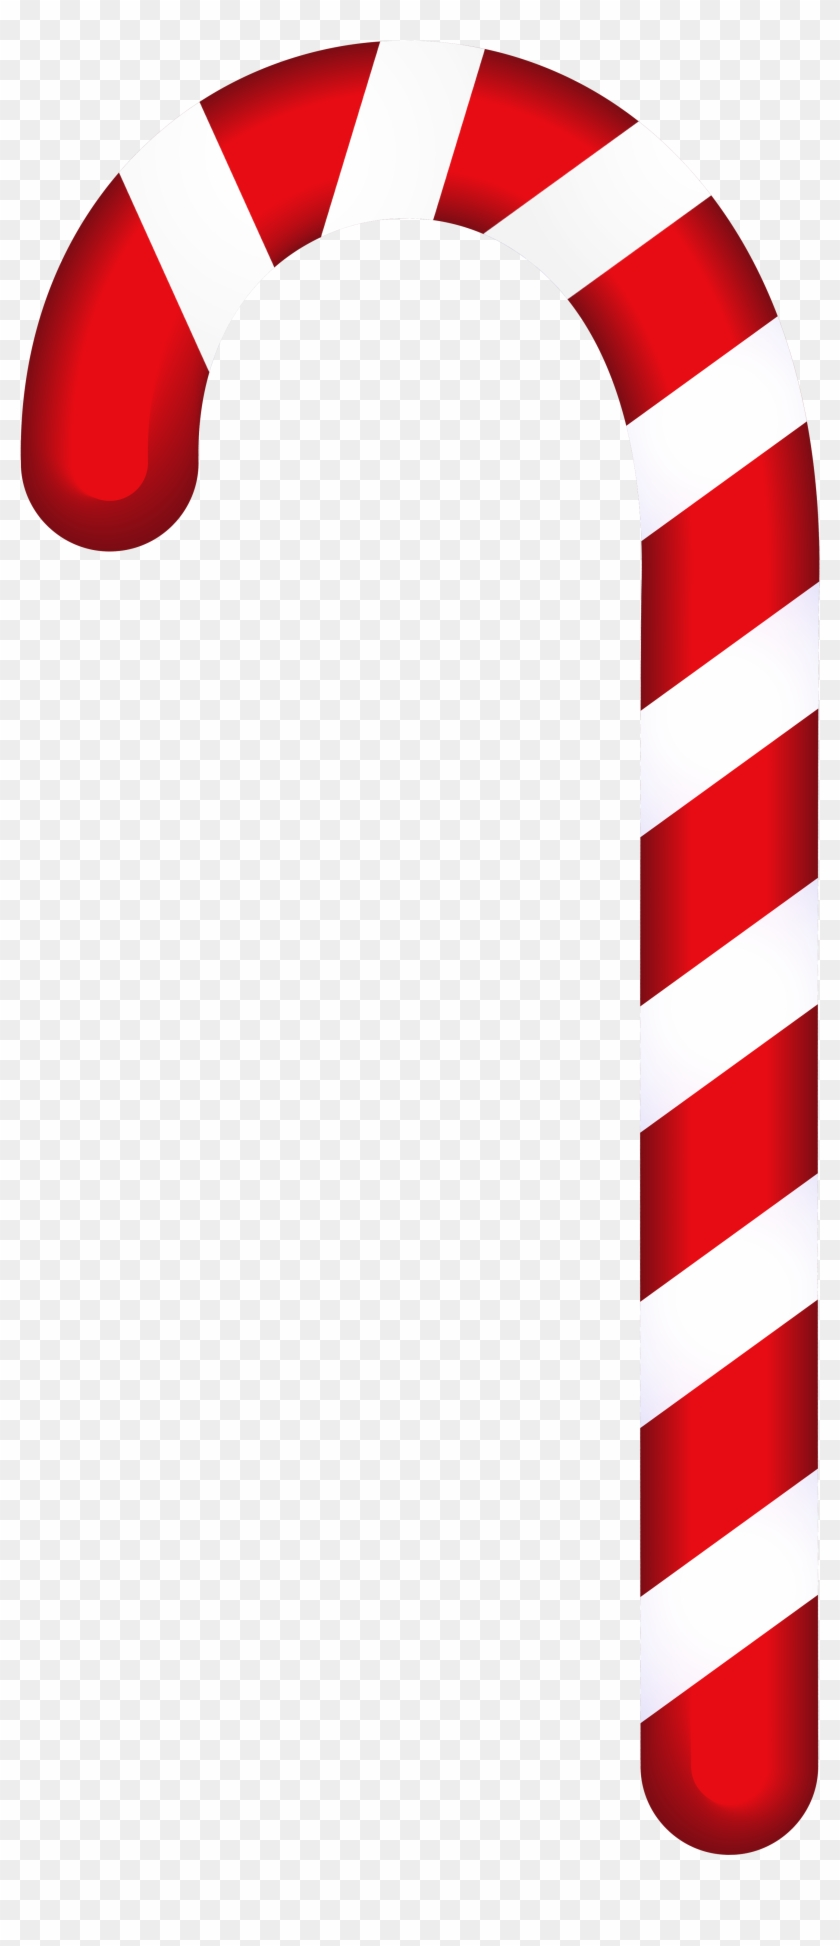 Candy Cane Clip Art Image - Candy Cane Clip Art Png #104766